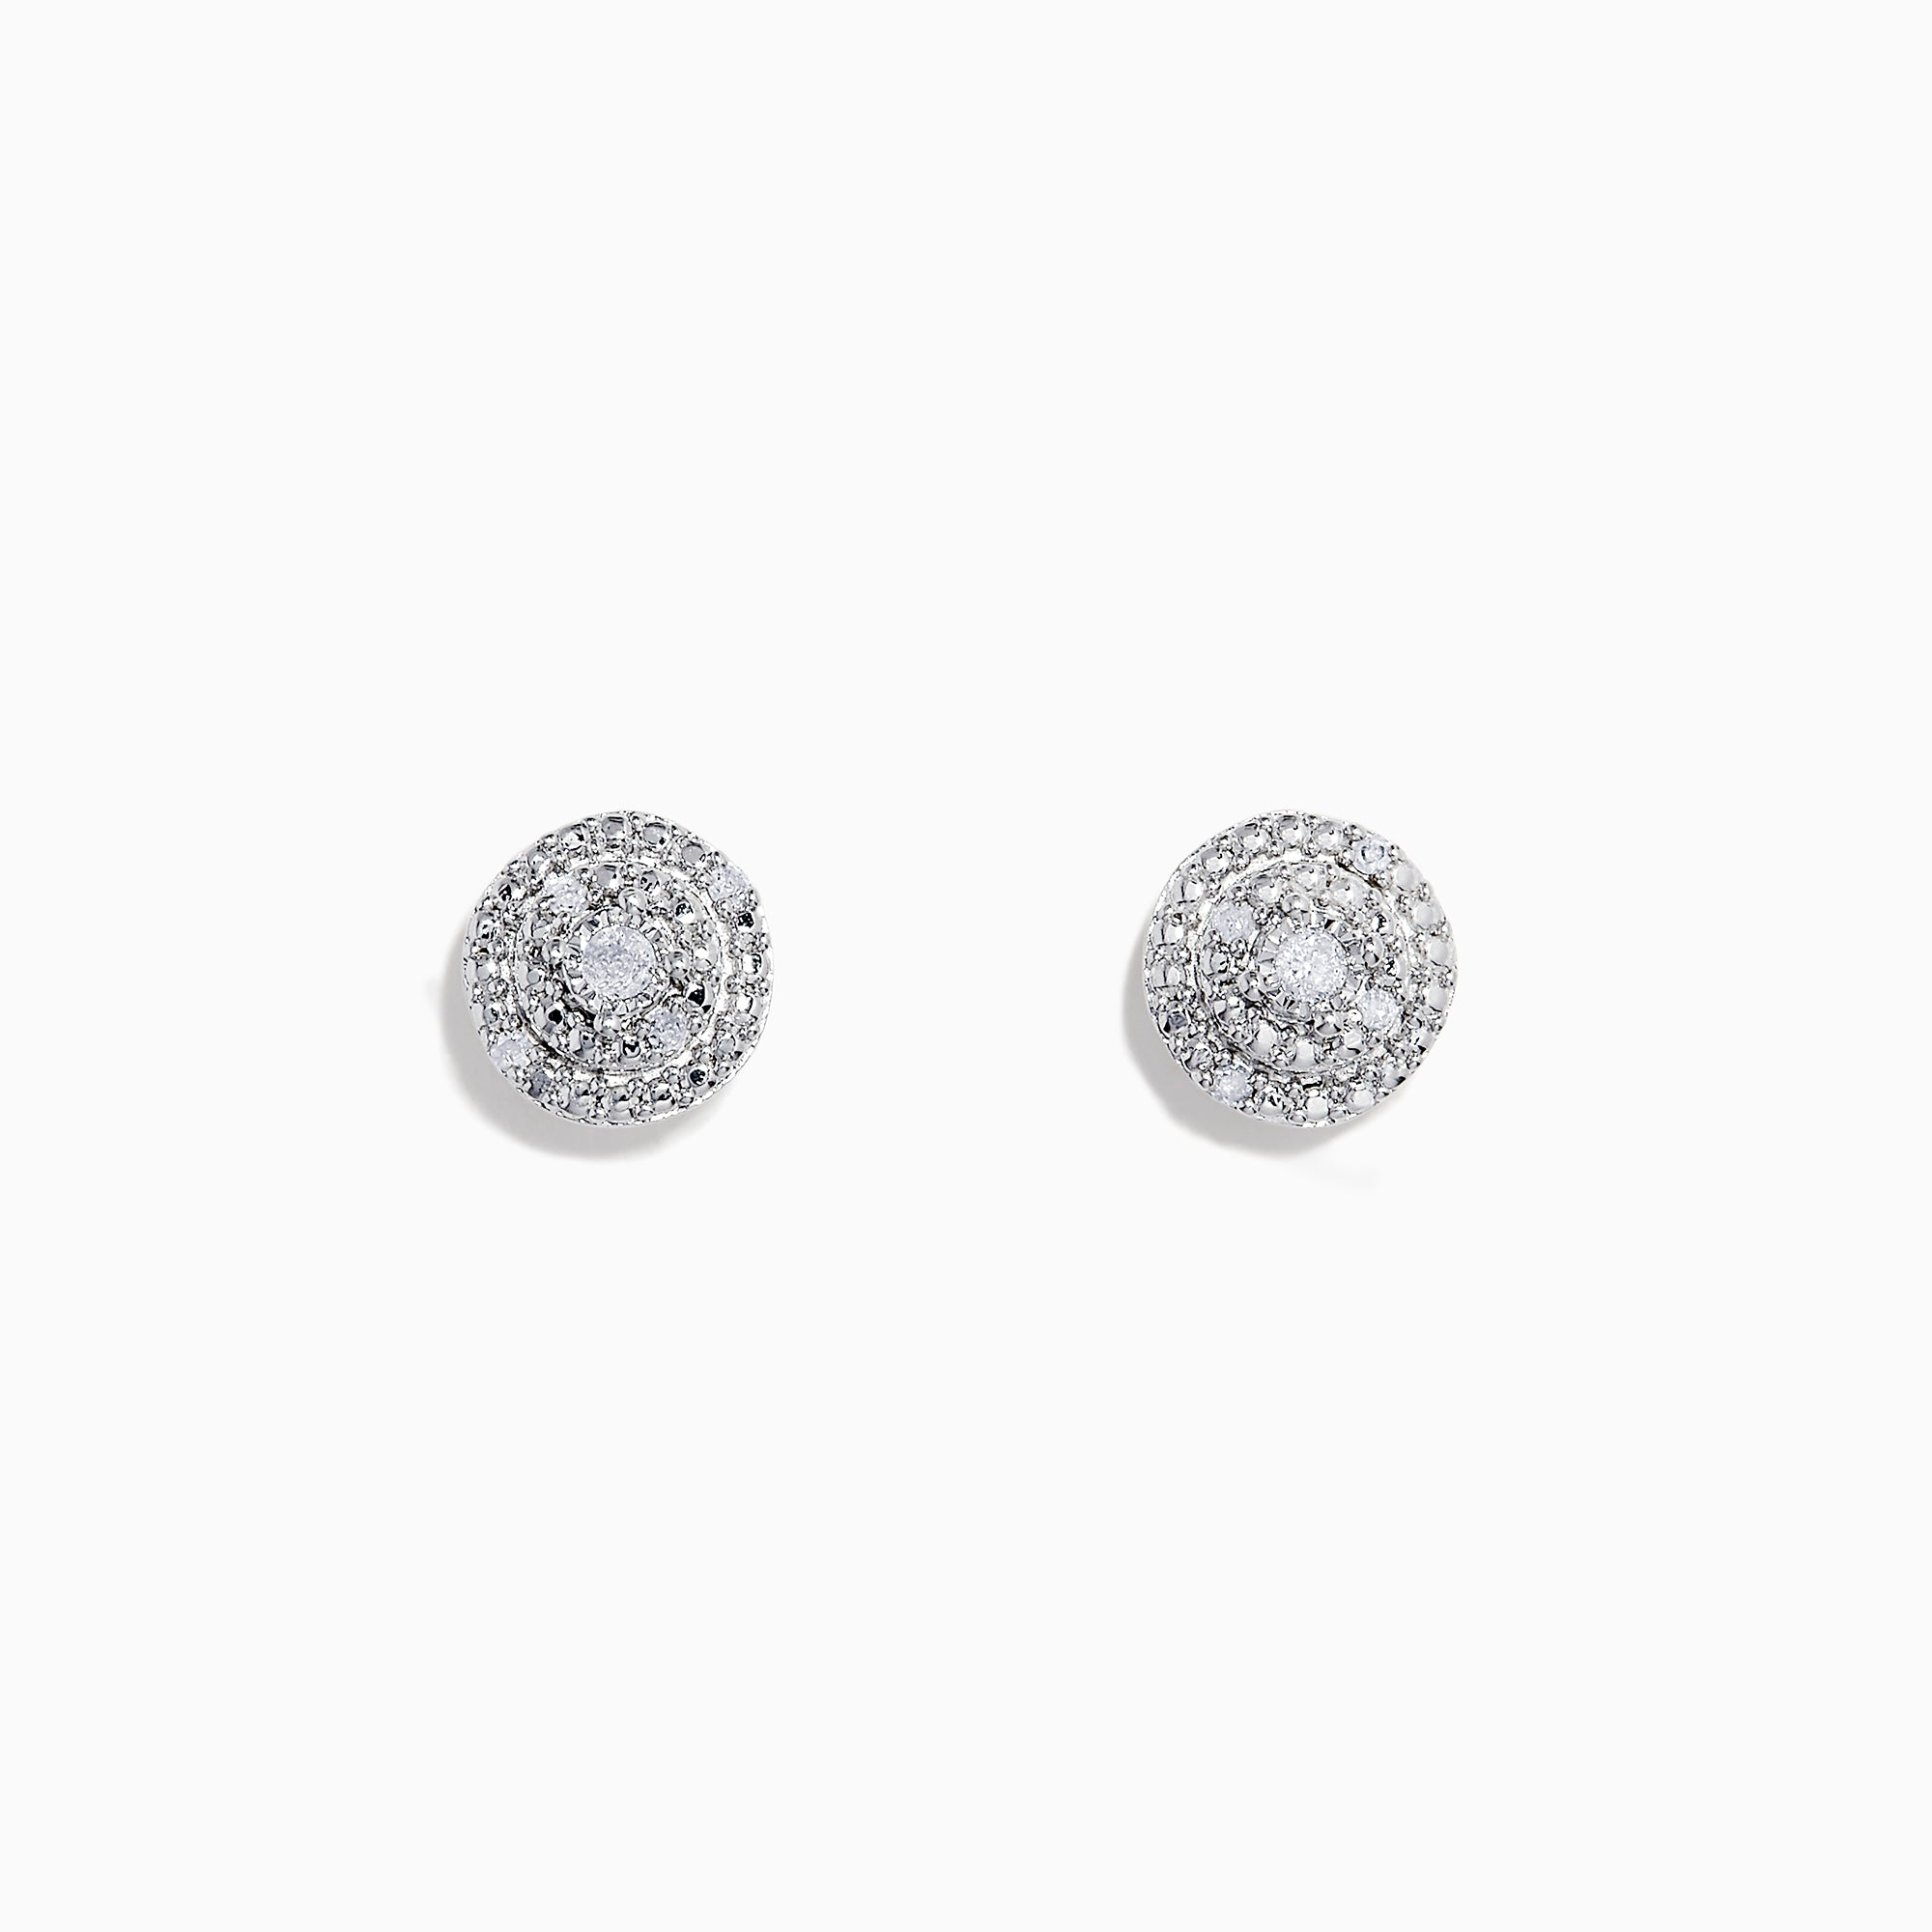 Effy 925 Sterling Silver Diamond Pave Stud Earrings, 0.10 TCW